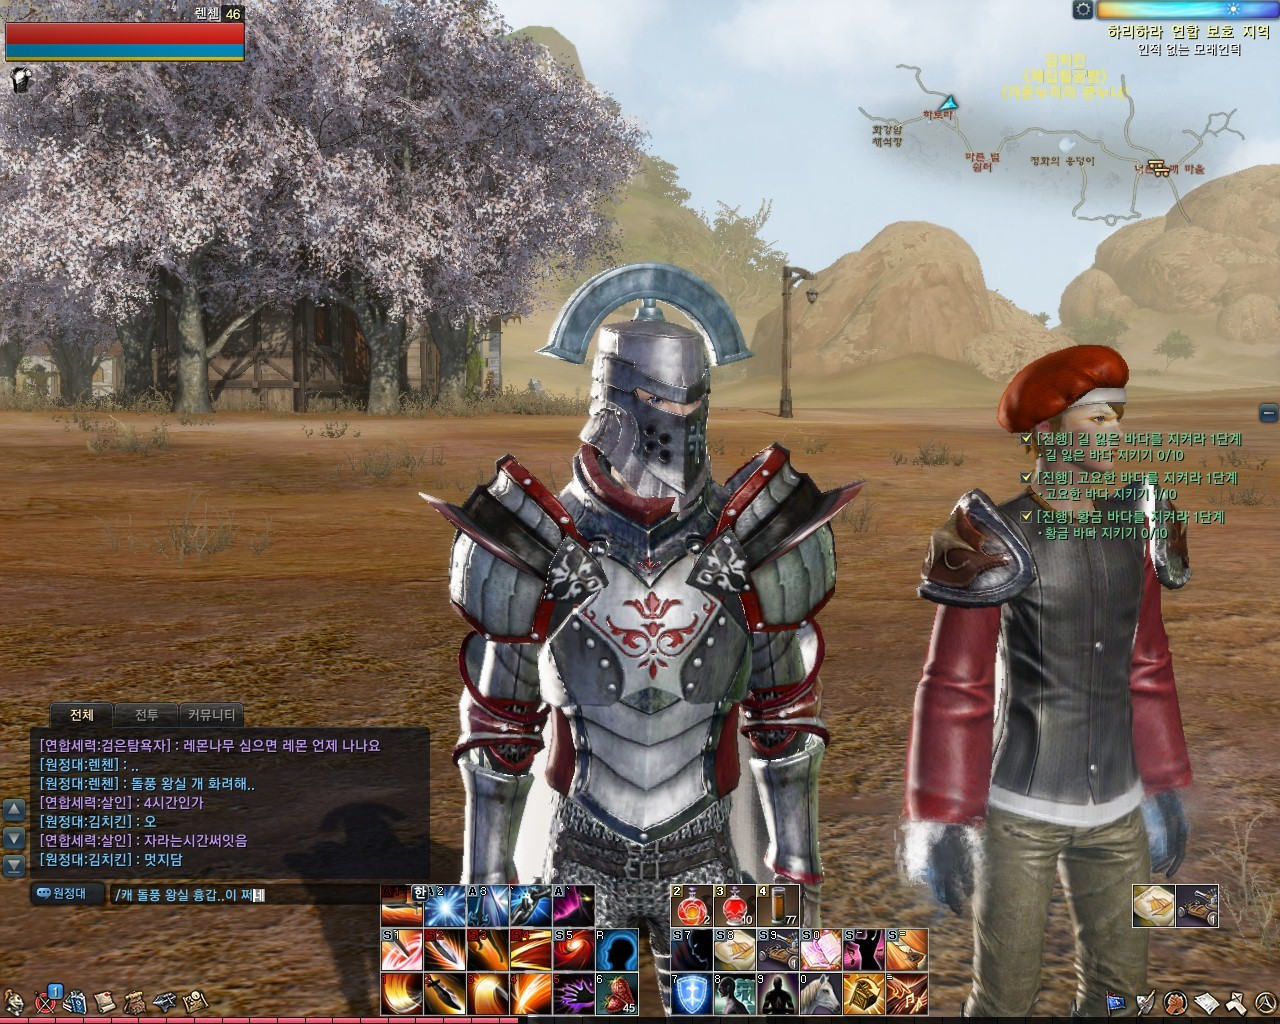 ArcheAge - some people call this game asian, i can't see a half naked 15 year old girl toon here